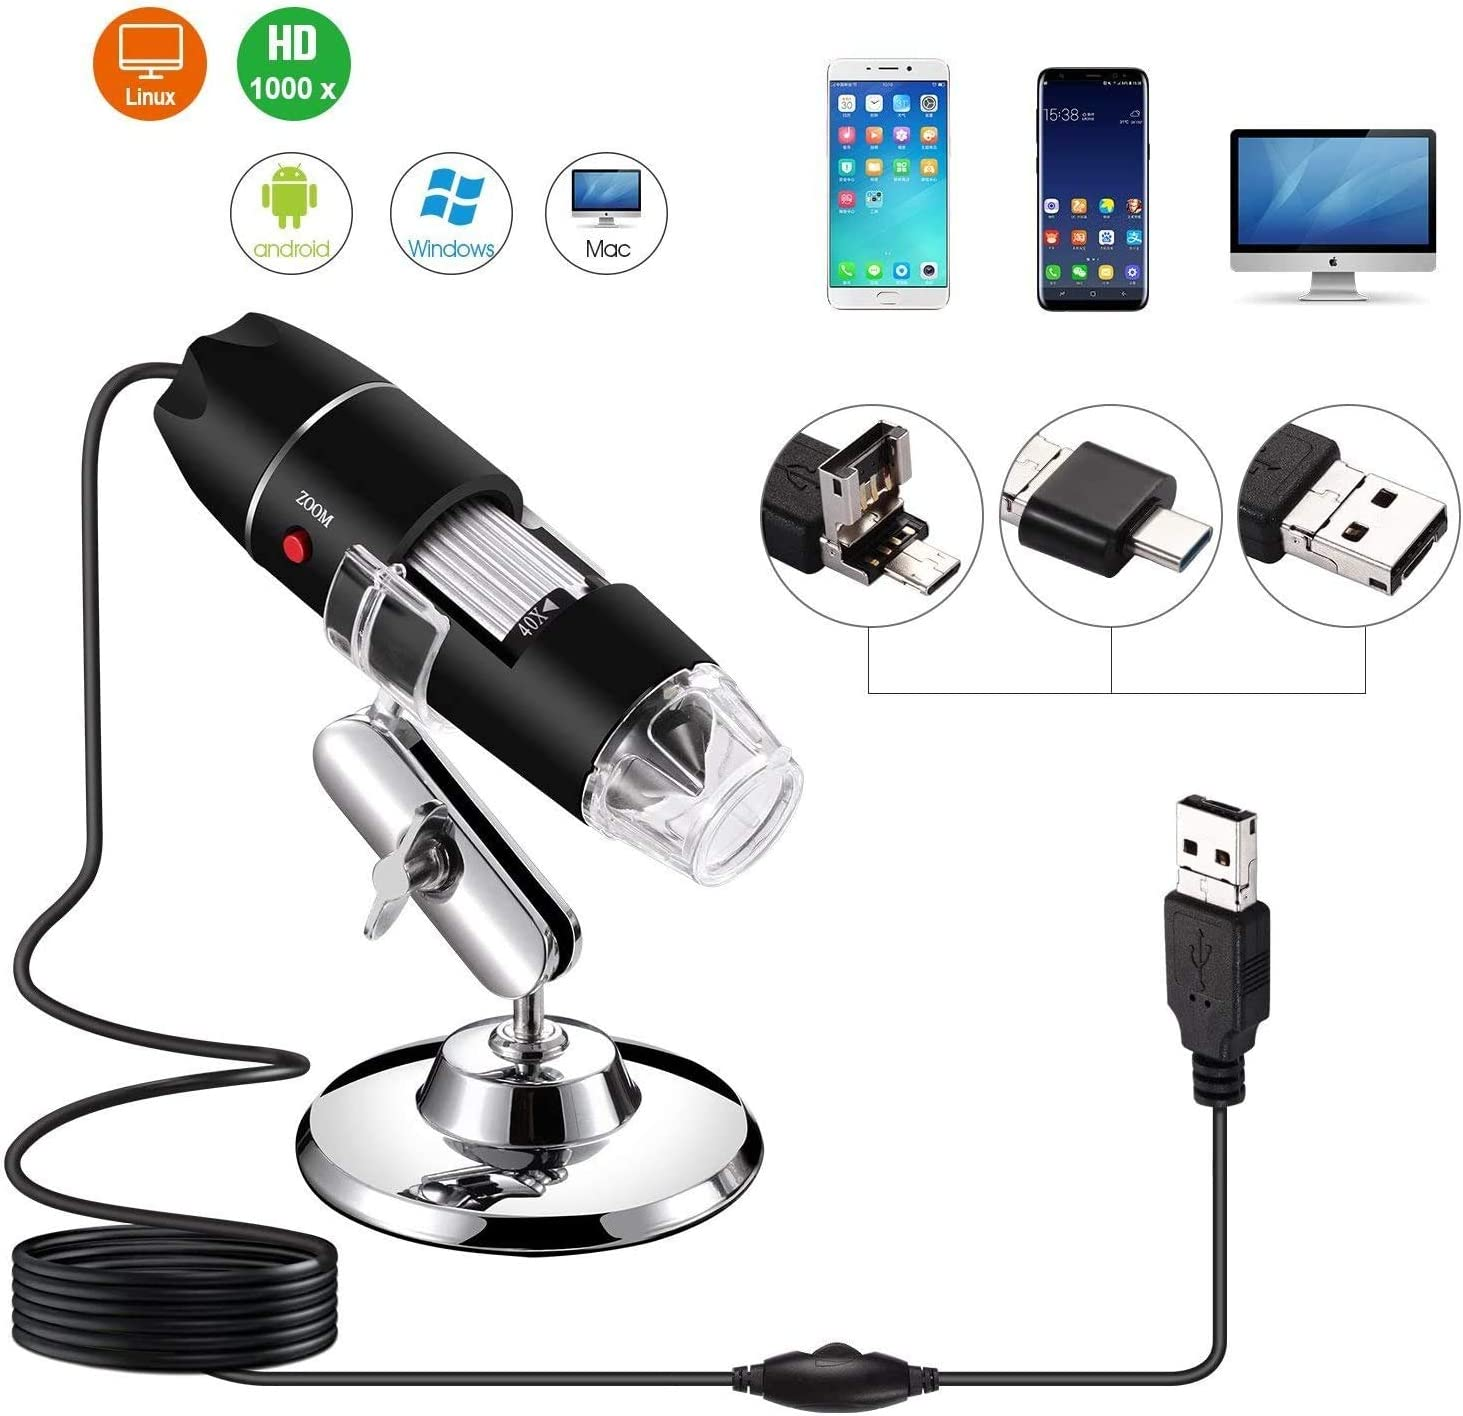 Size:1000x Compatible With Mac Window Android Linux Portable 500x To1600x Magnification Endoscope Handheld USB HD Inspection Camera 8 LED USB 2.0 Digital Microscope With OTG Adapter And Metal Stand